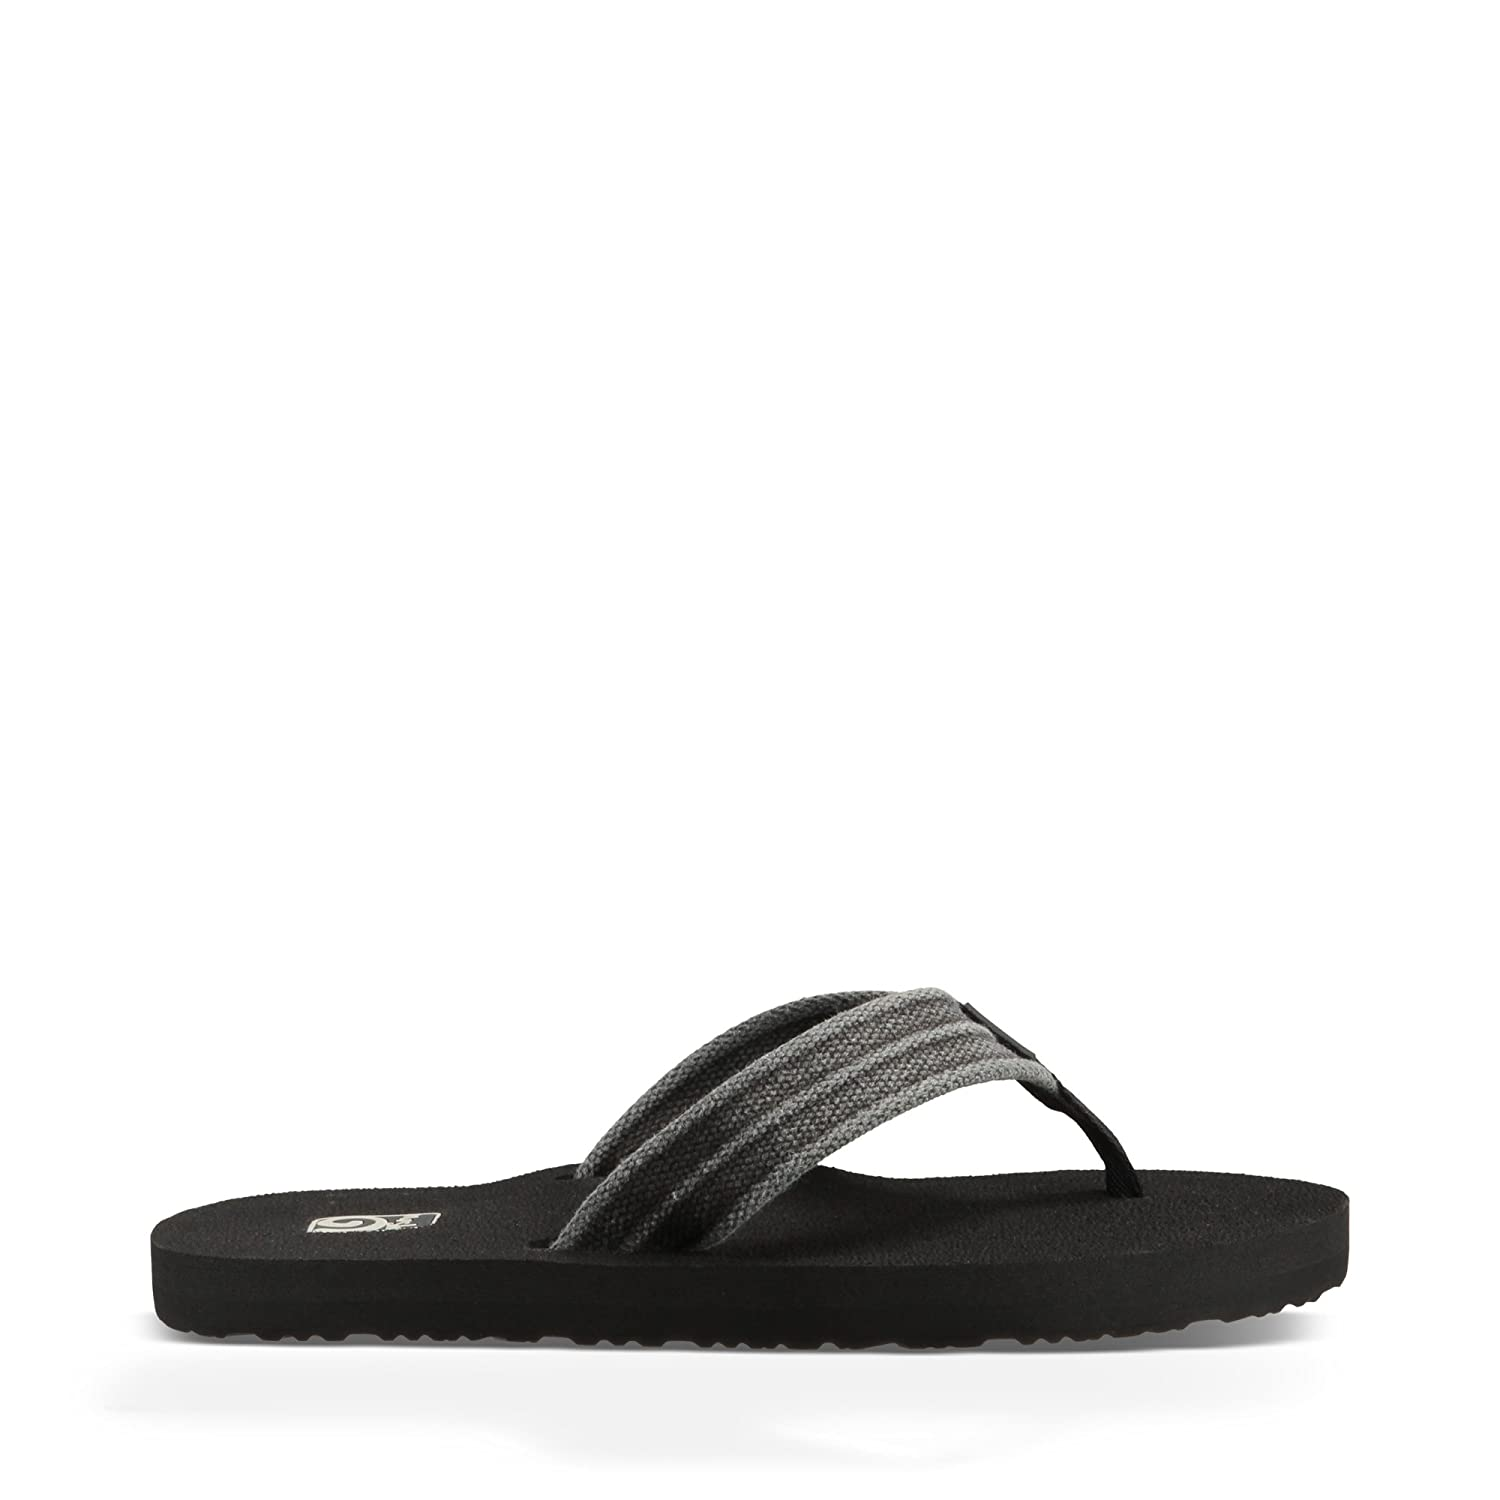 Teva Men's Mush II Canvas Flip-Flop Mush II Canvas M-M